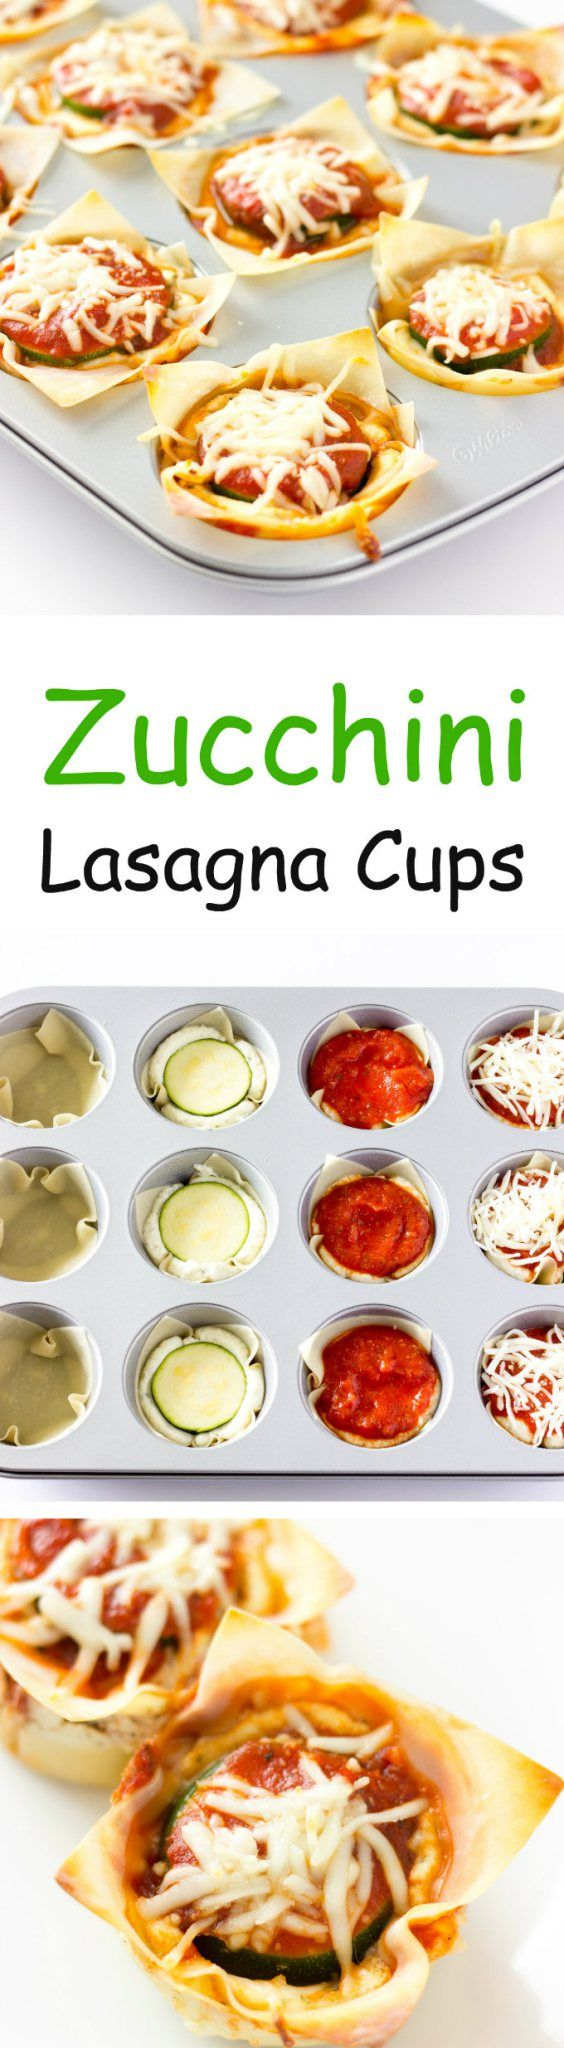 Zucchini Lasagna Cups - mini zucchini lasagnas made in a muffin tin. #vegetarian